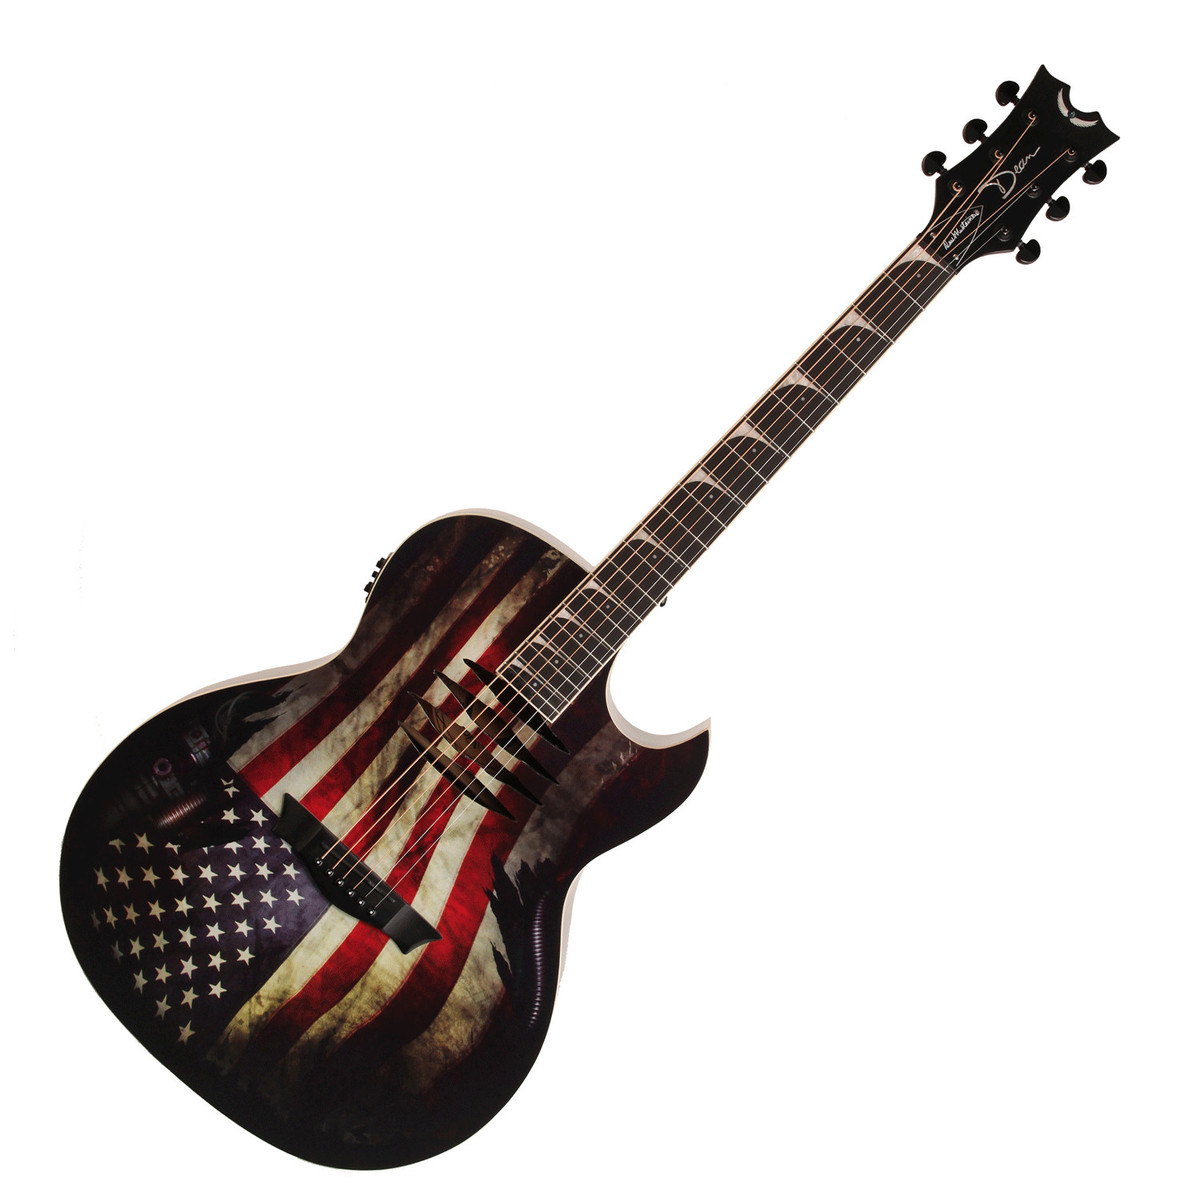 dean mako dave mustaine electro acoustic guitar usa flag at. Black Bedroom Furniture Sets. Home Design Ideas